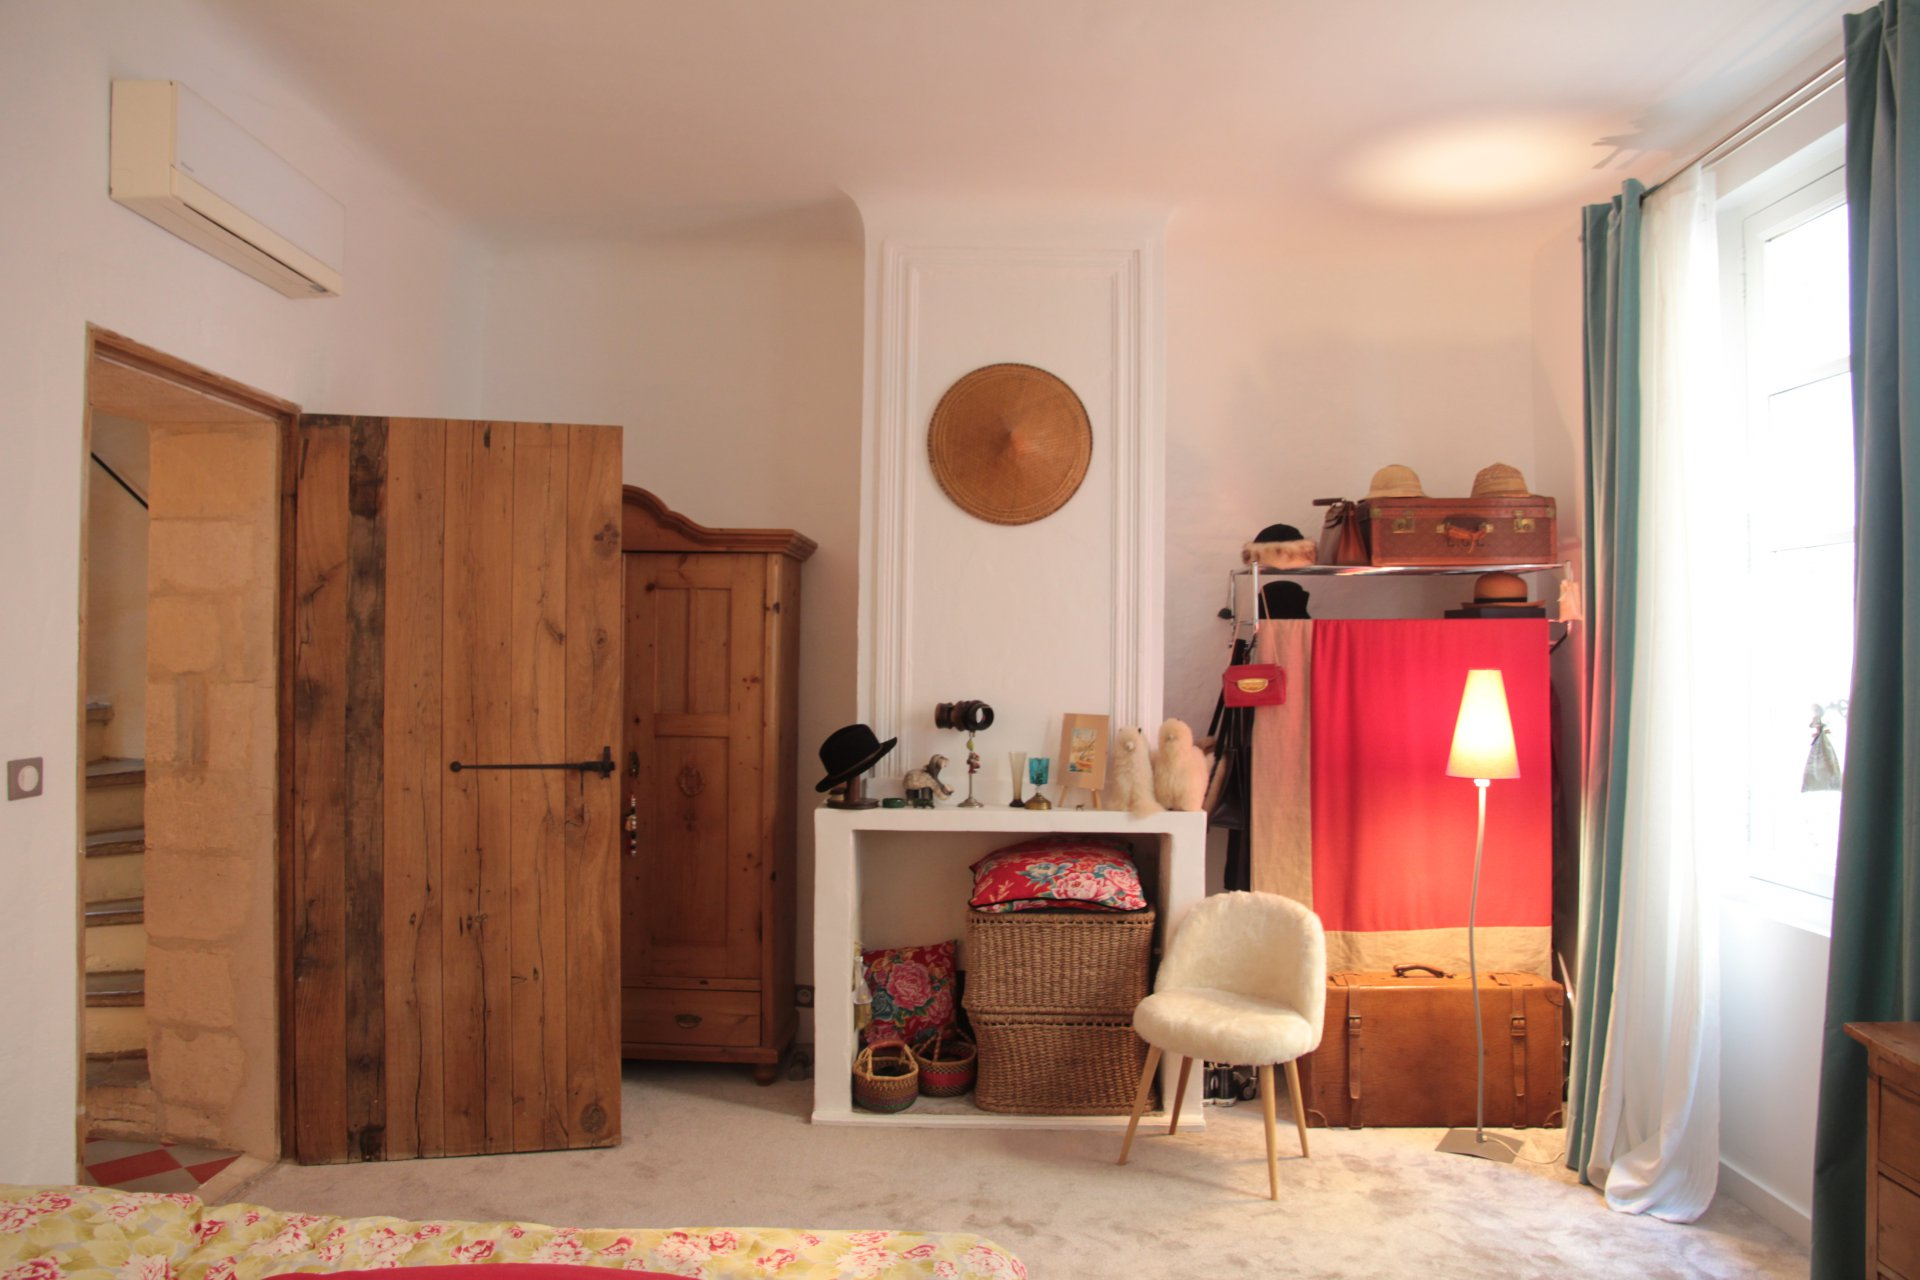 3 BEDROOM CHARACTER HOUSE  FOR SALE IN ARLES CENTER